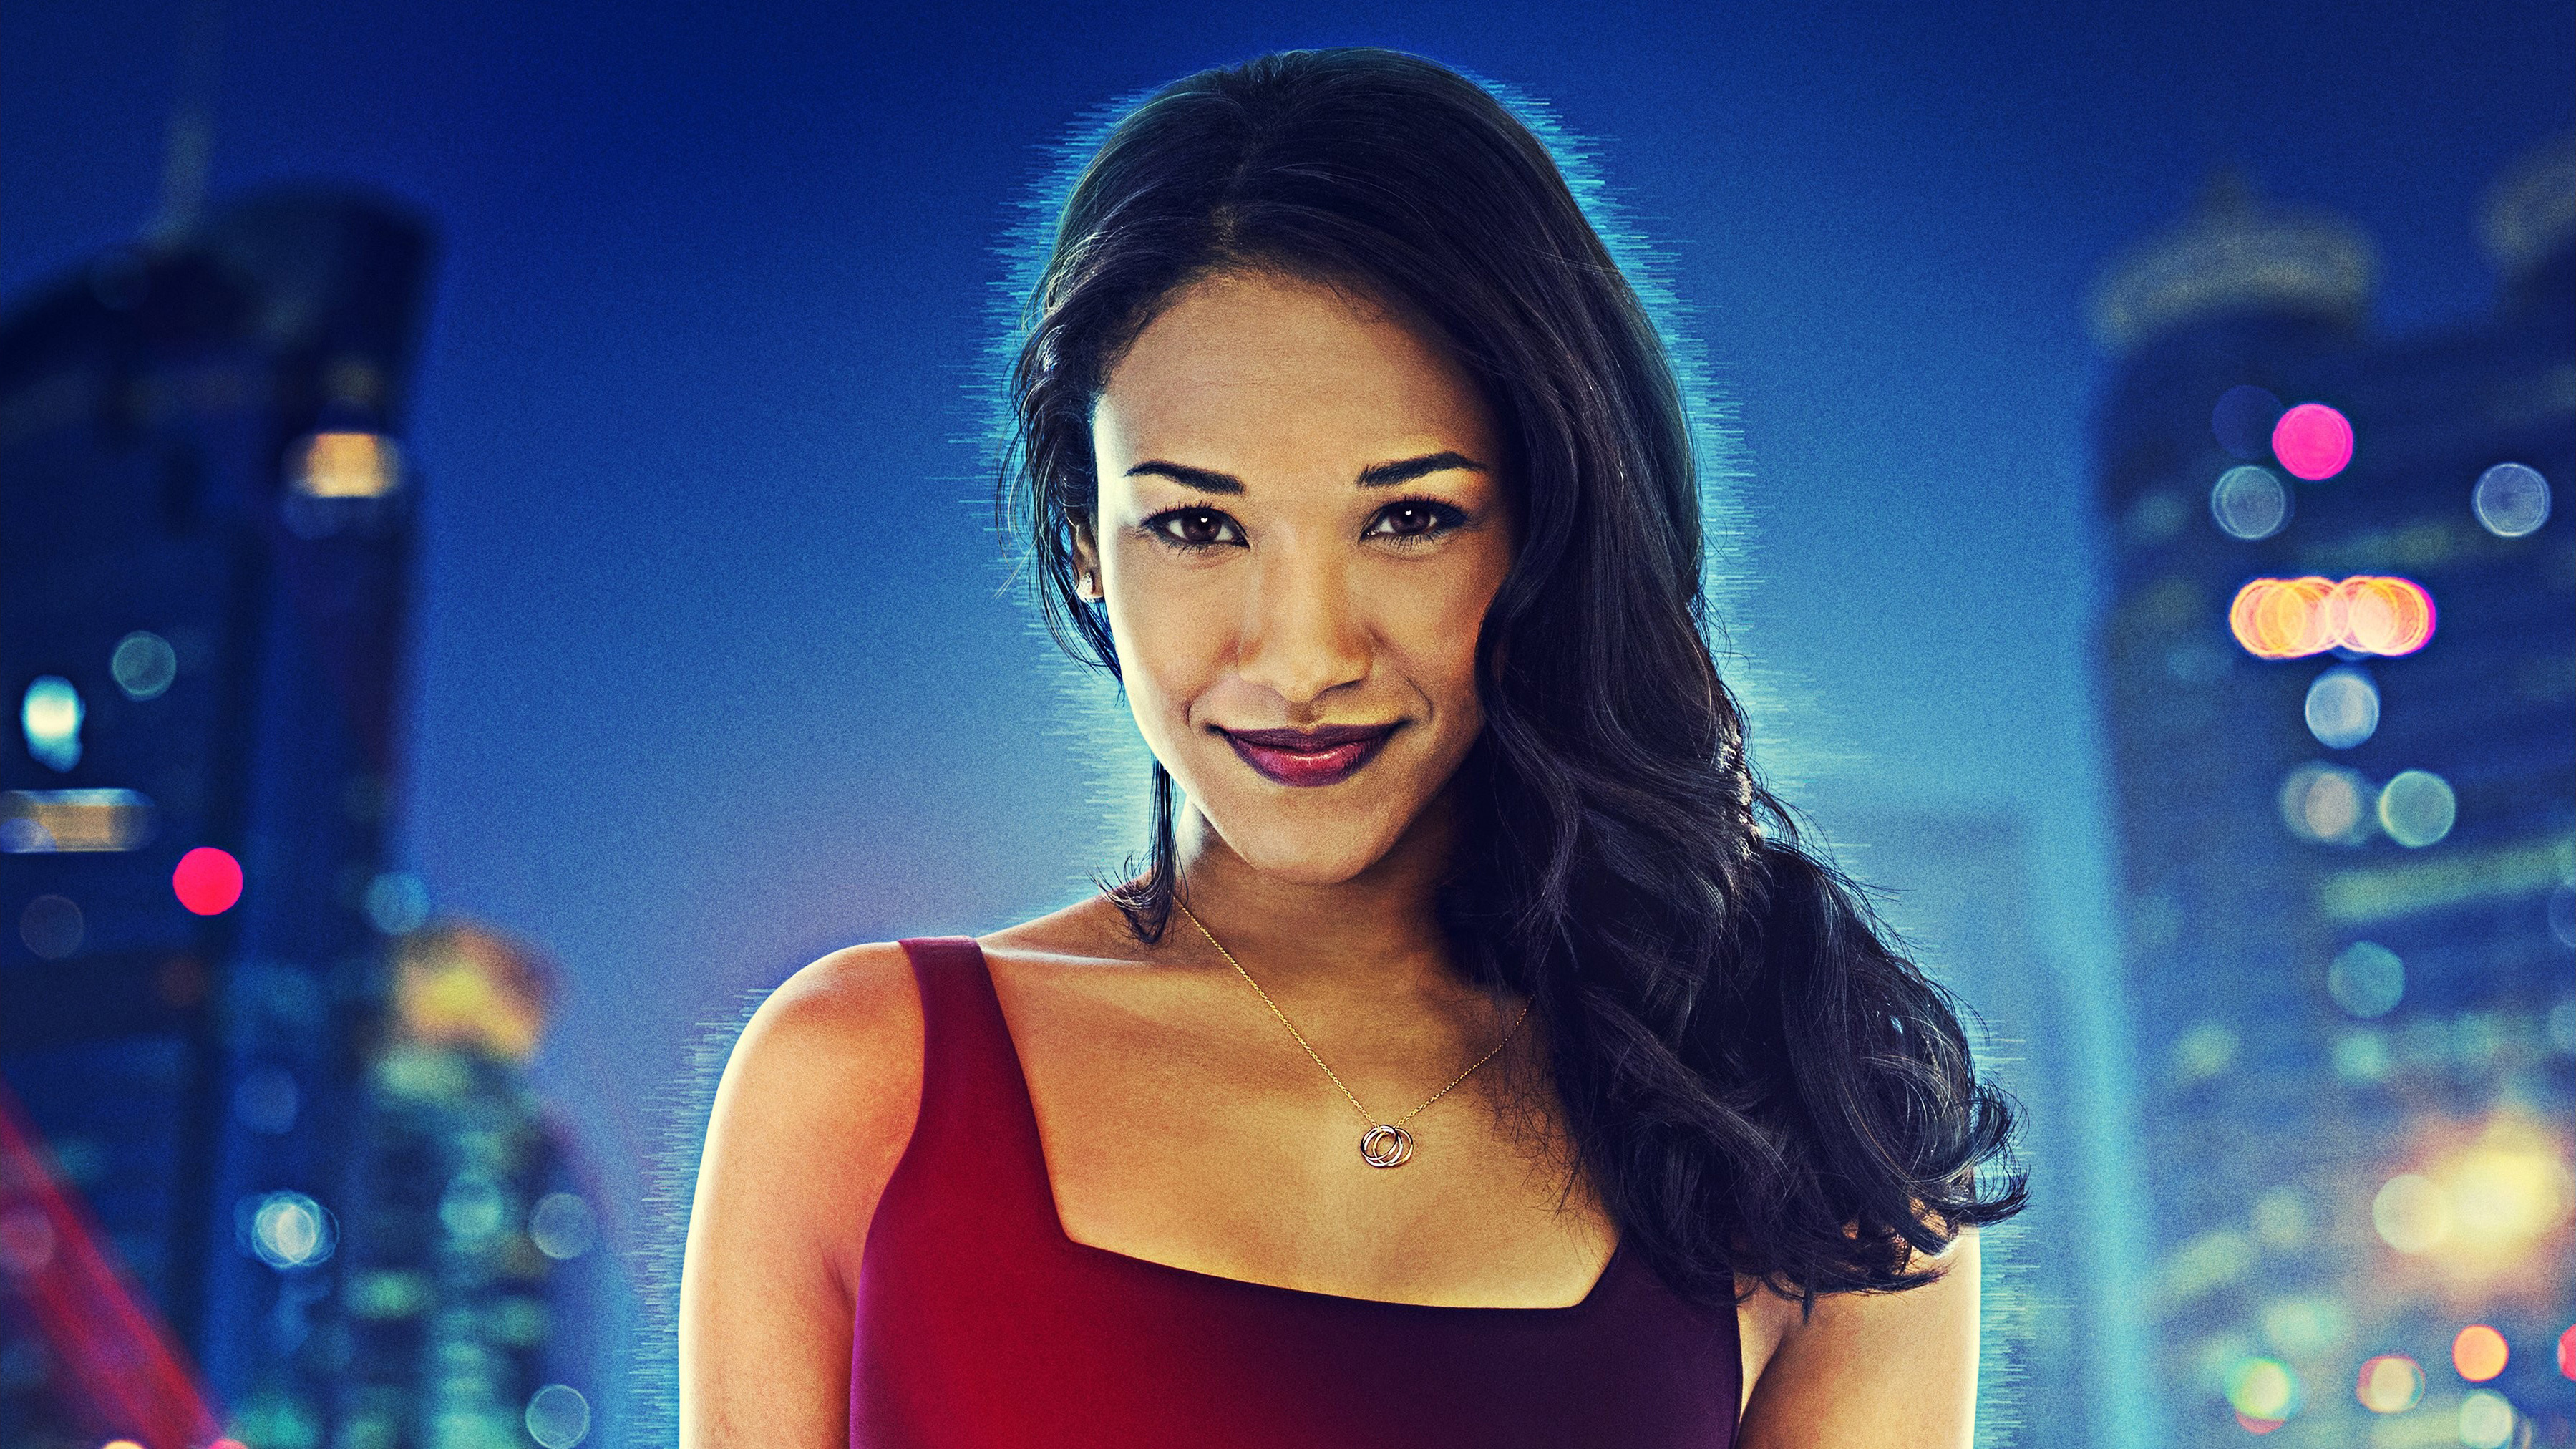 candice patton as iris west in the flash, hd tv shows, 4k wallpapers